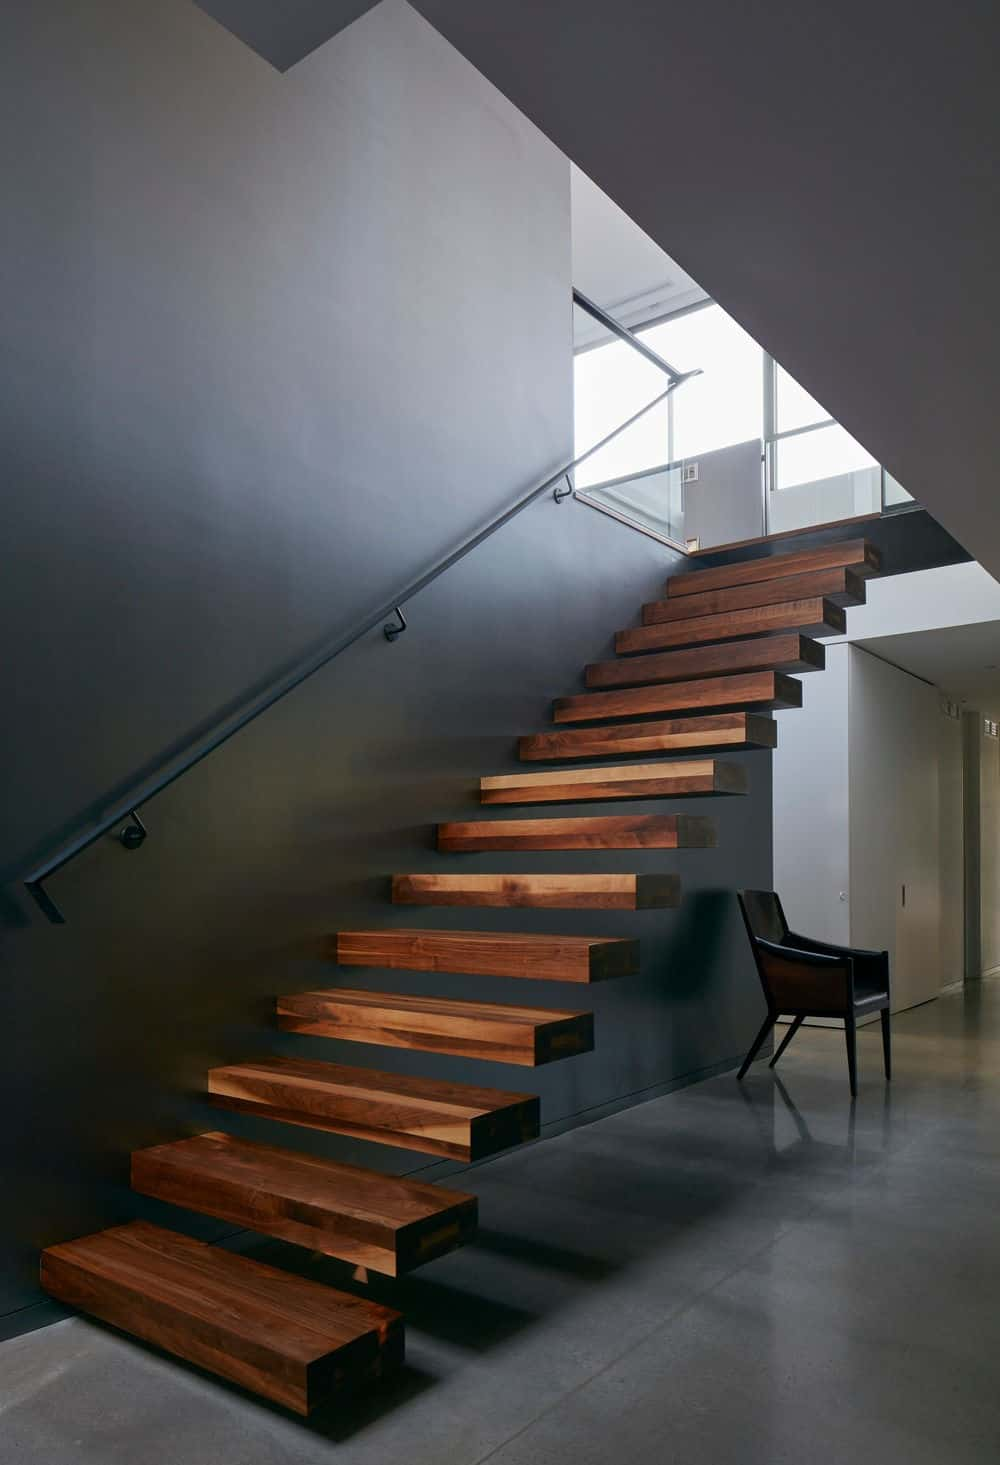 The staircase features hardwood steps. Photo Credit: James Brittain